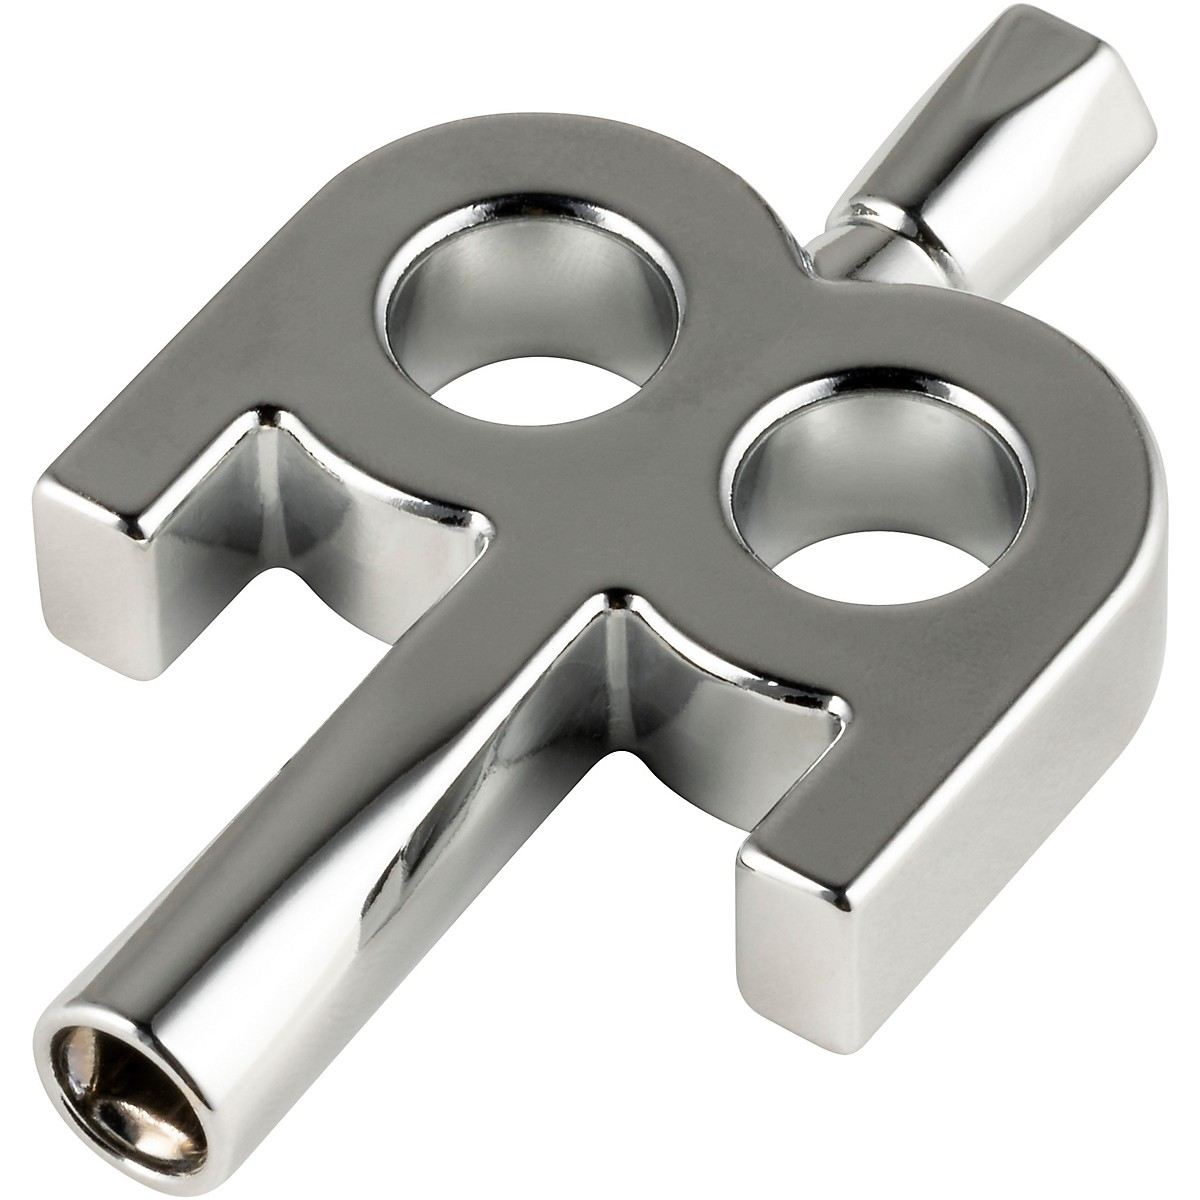 Meinl Stick & Brush Chrome Plated Kinetic Drum Key